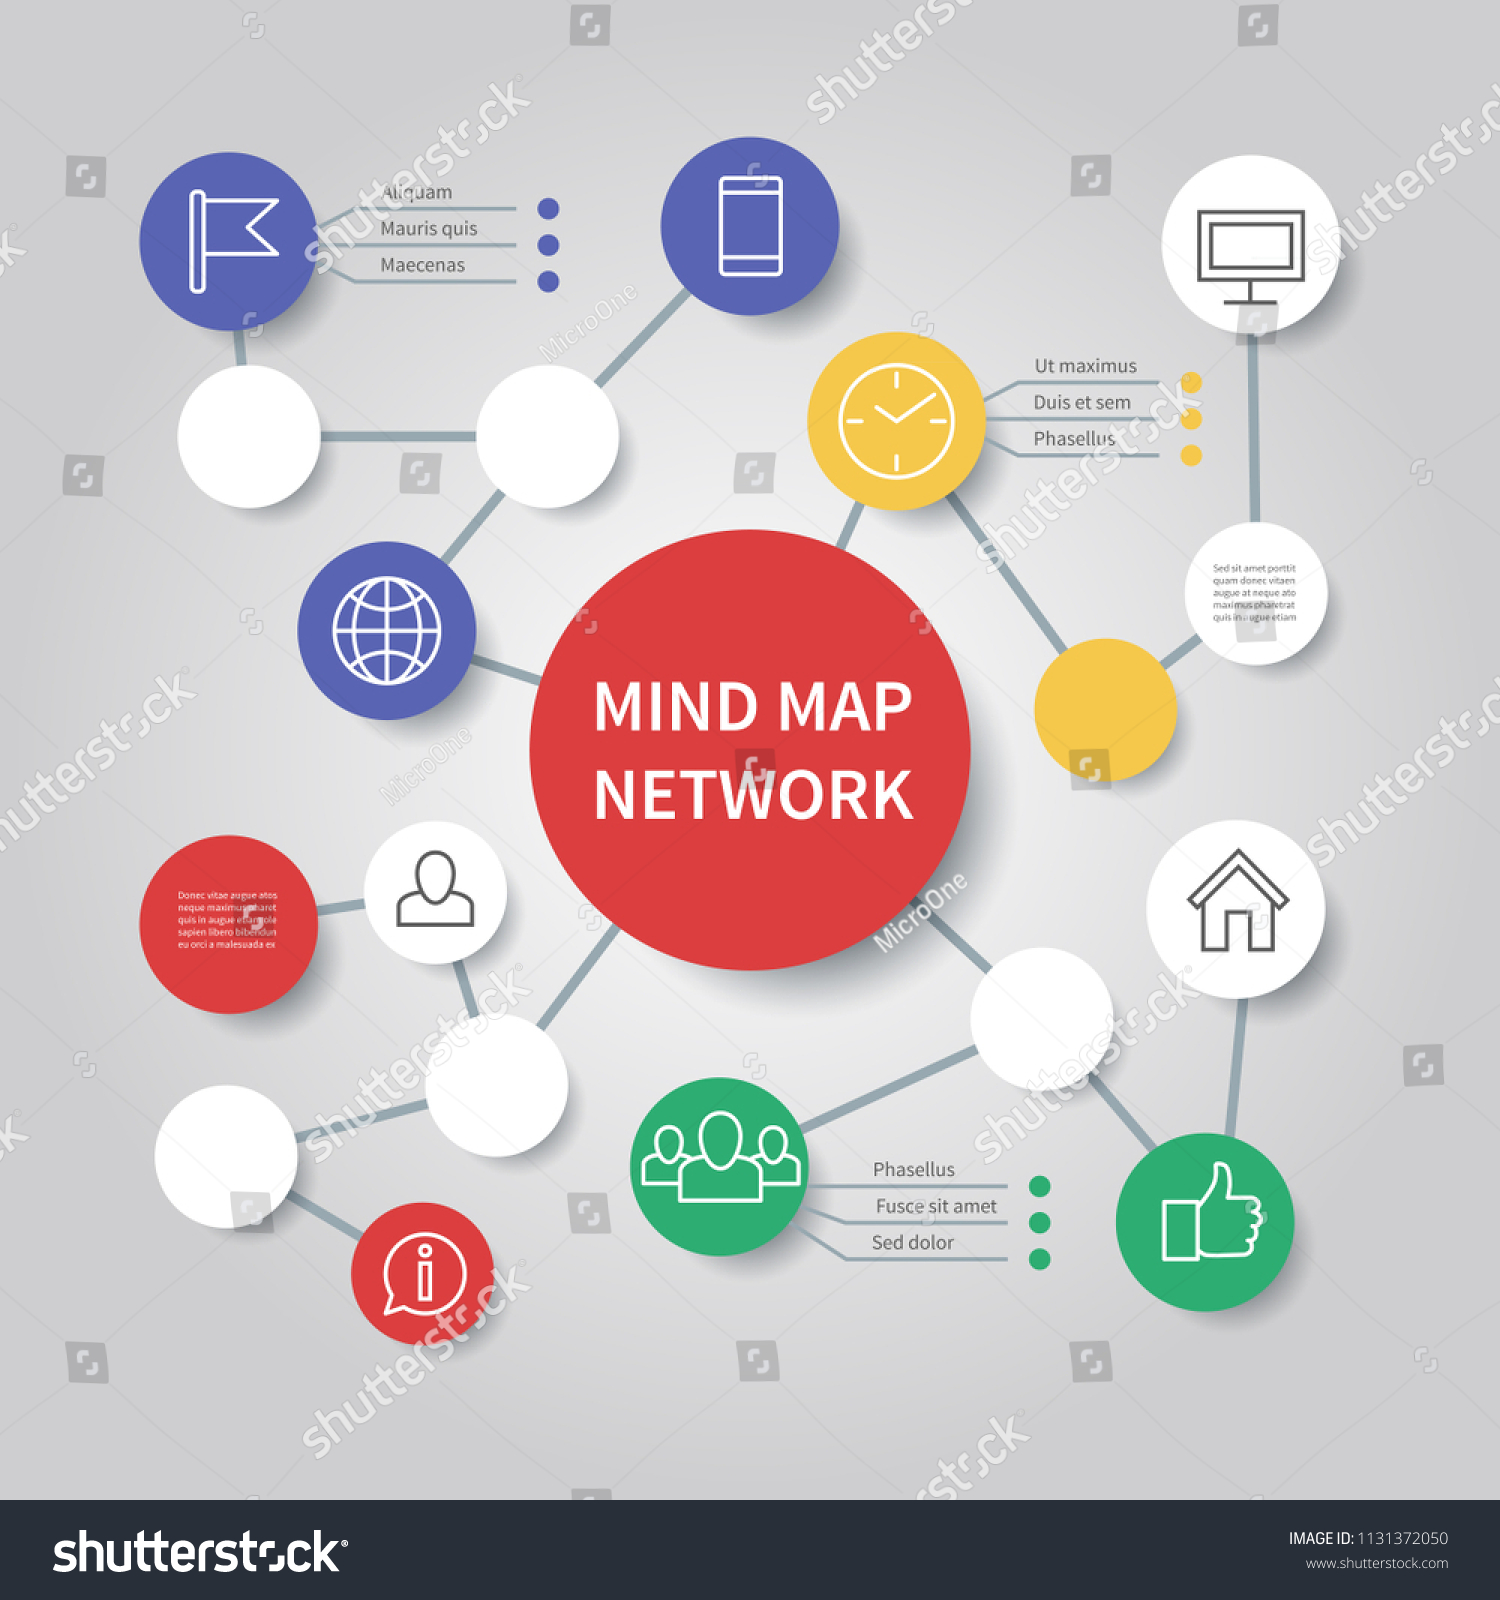 Mind Map Network Diagram Mindfulness Flowchart Stock Vector Royalty Free 1131372050